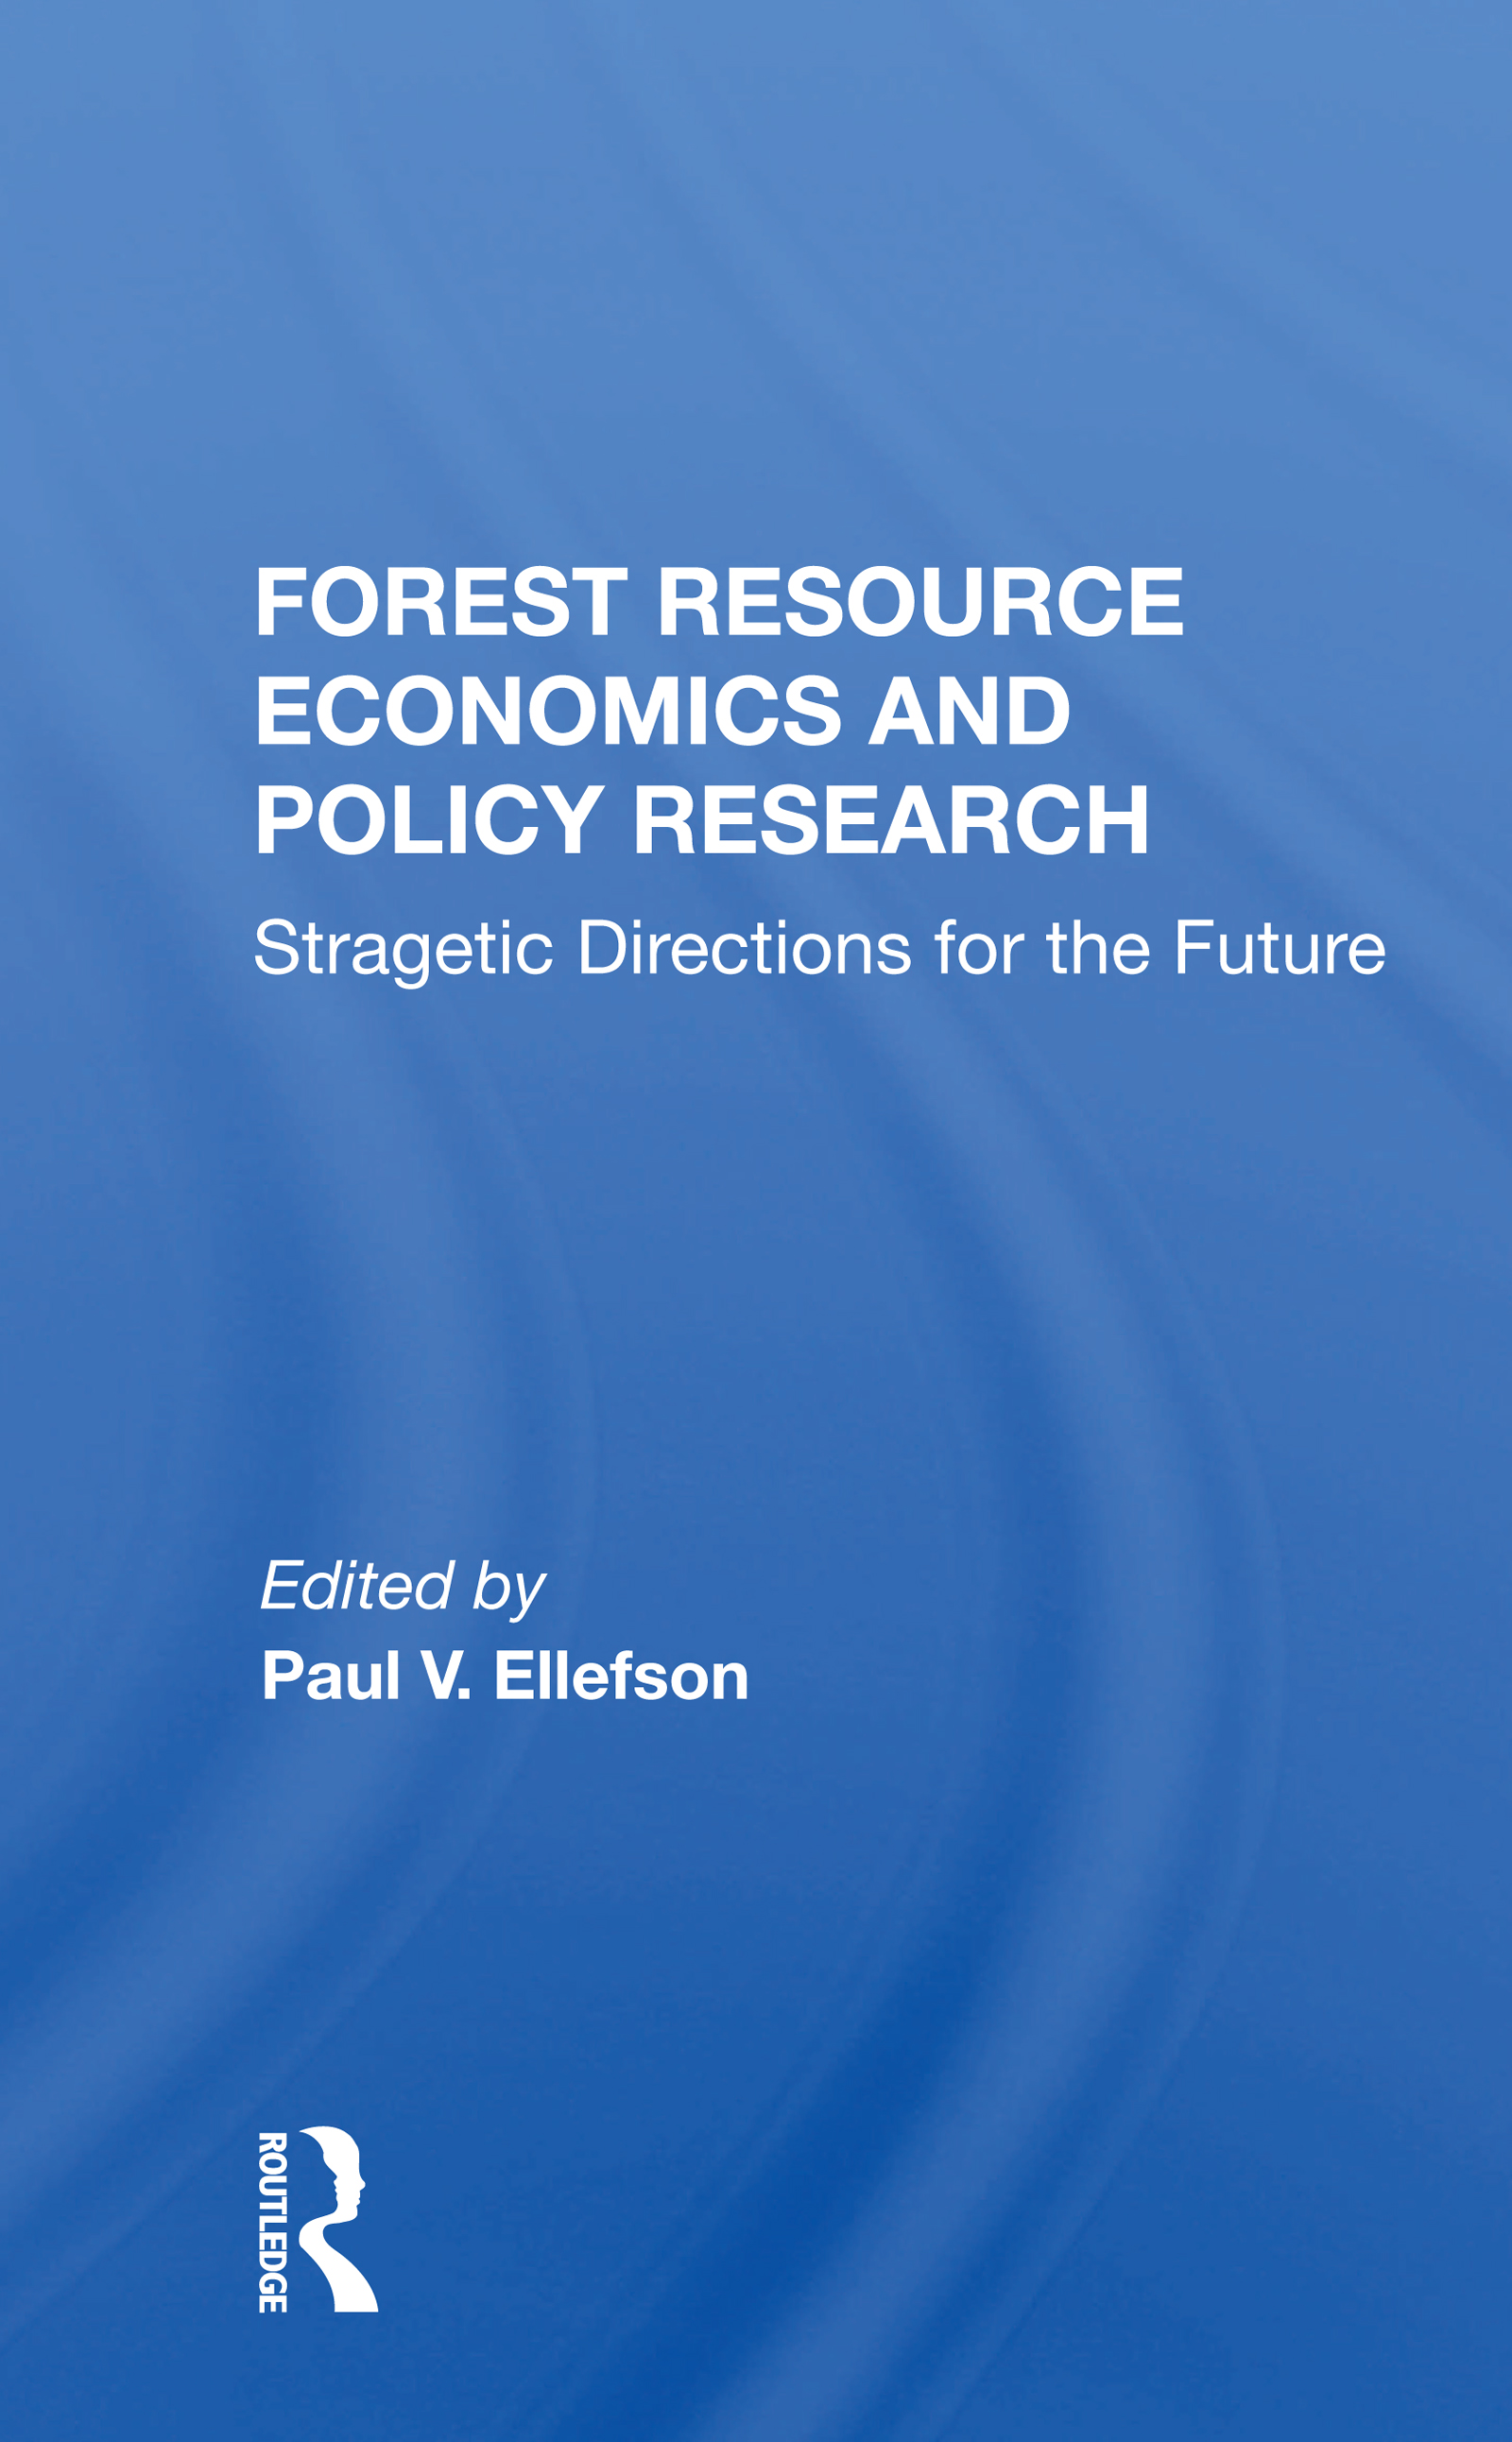 Forest Resource Economics and Policy Research